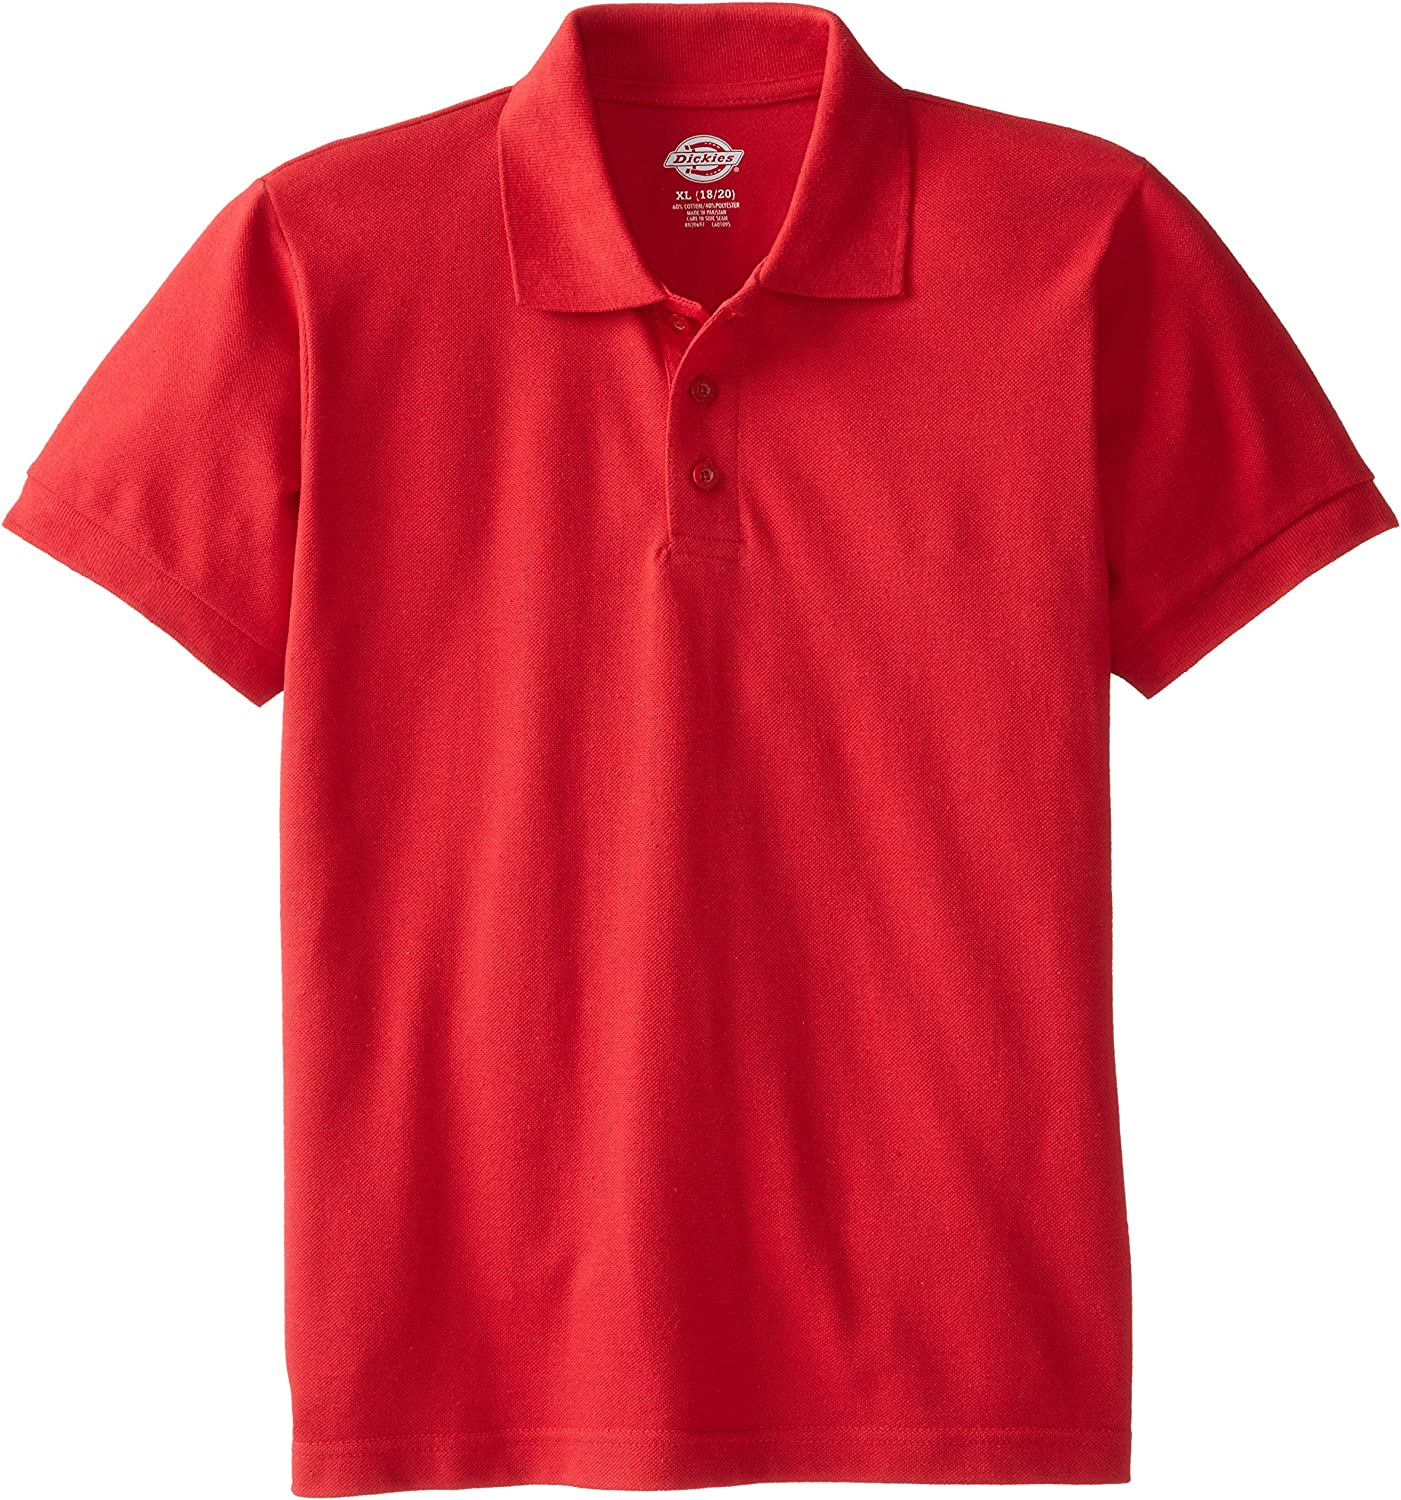 Details about  /Dickies polo Goft Shirts Mens Short Sleeve polo T-shirt #5521